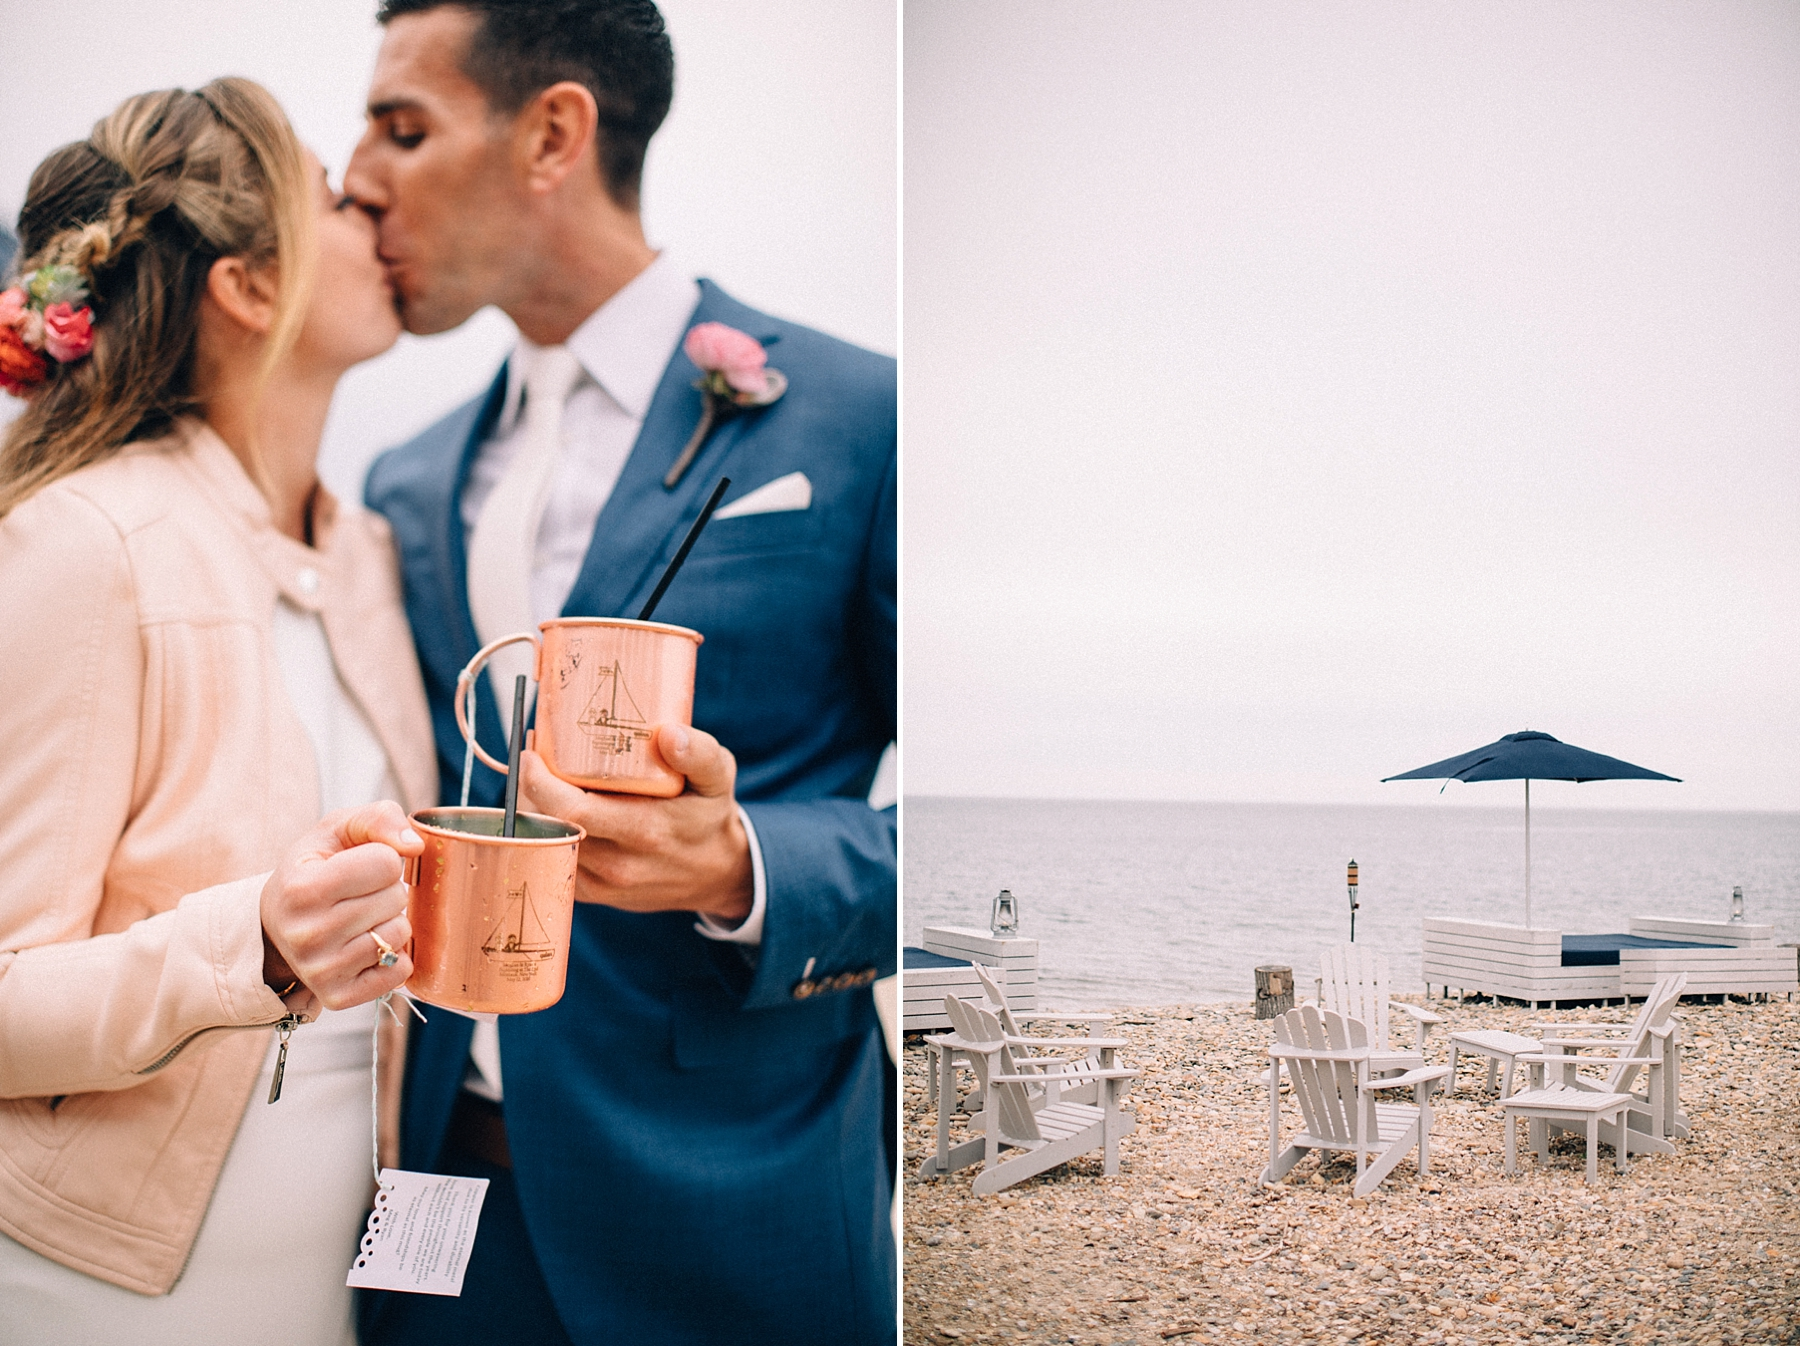 montauk-wedding-photography-rainy-navy-beach_0047.jpg